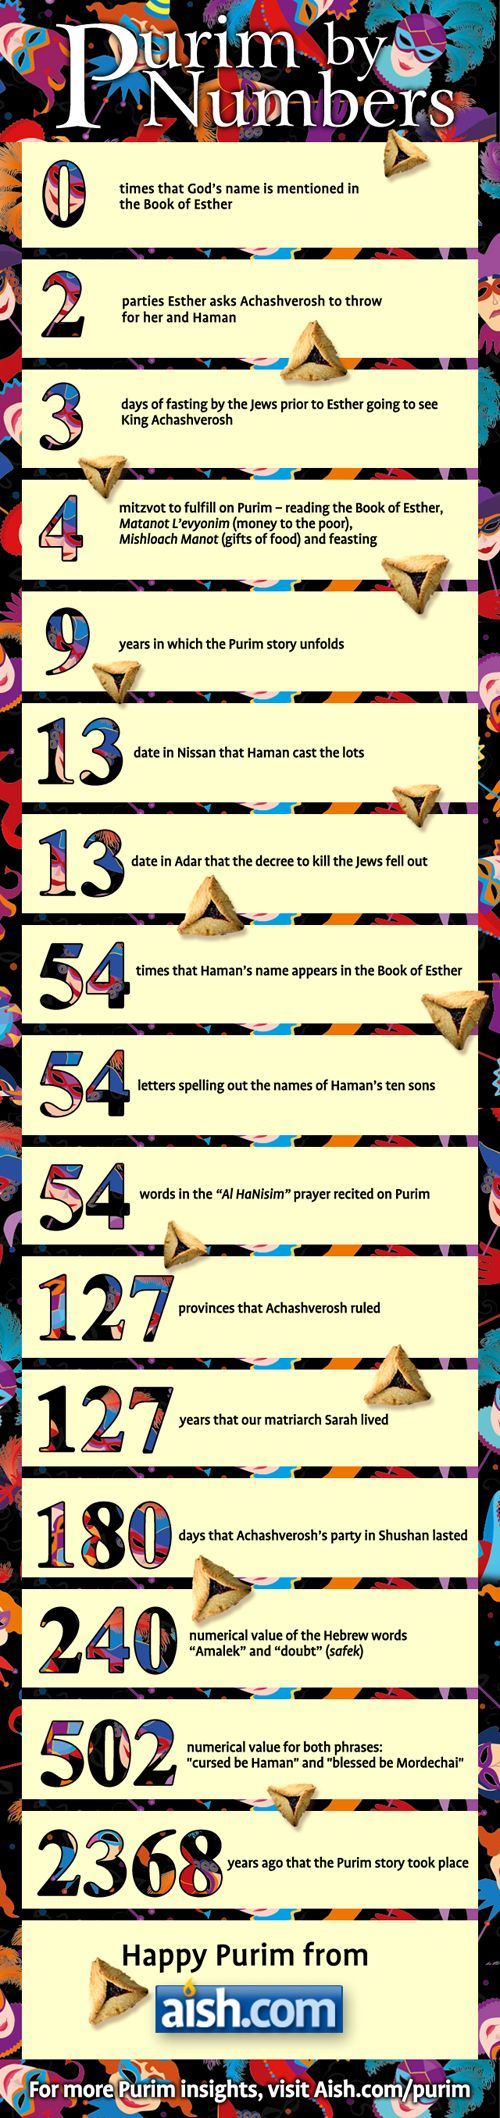 We love the information on this infographic #Purim by Numbers.  Send to Fedex Kinkos to print out in large format for your celebration! #DreidelJams